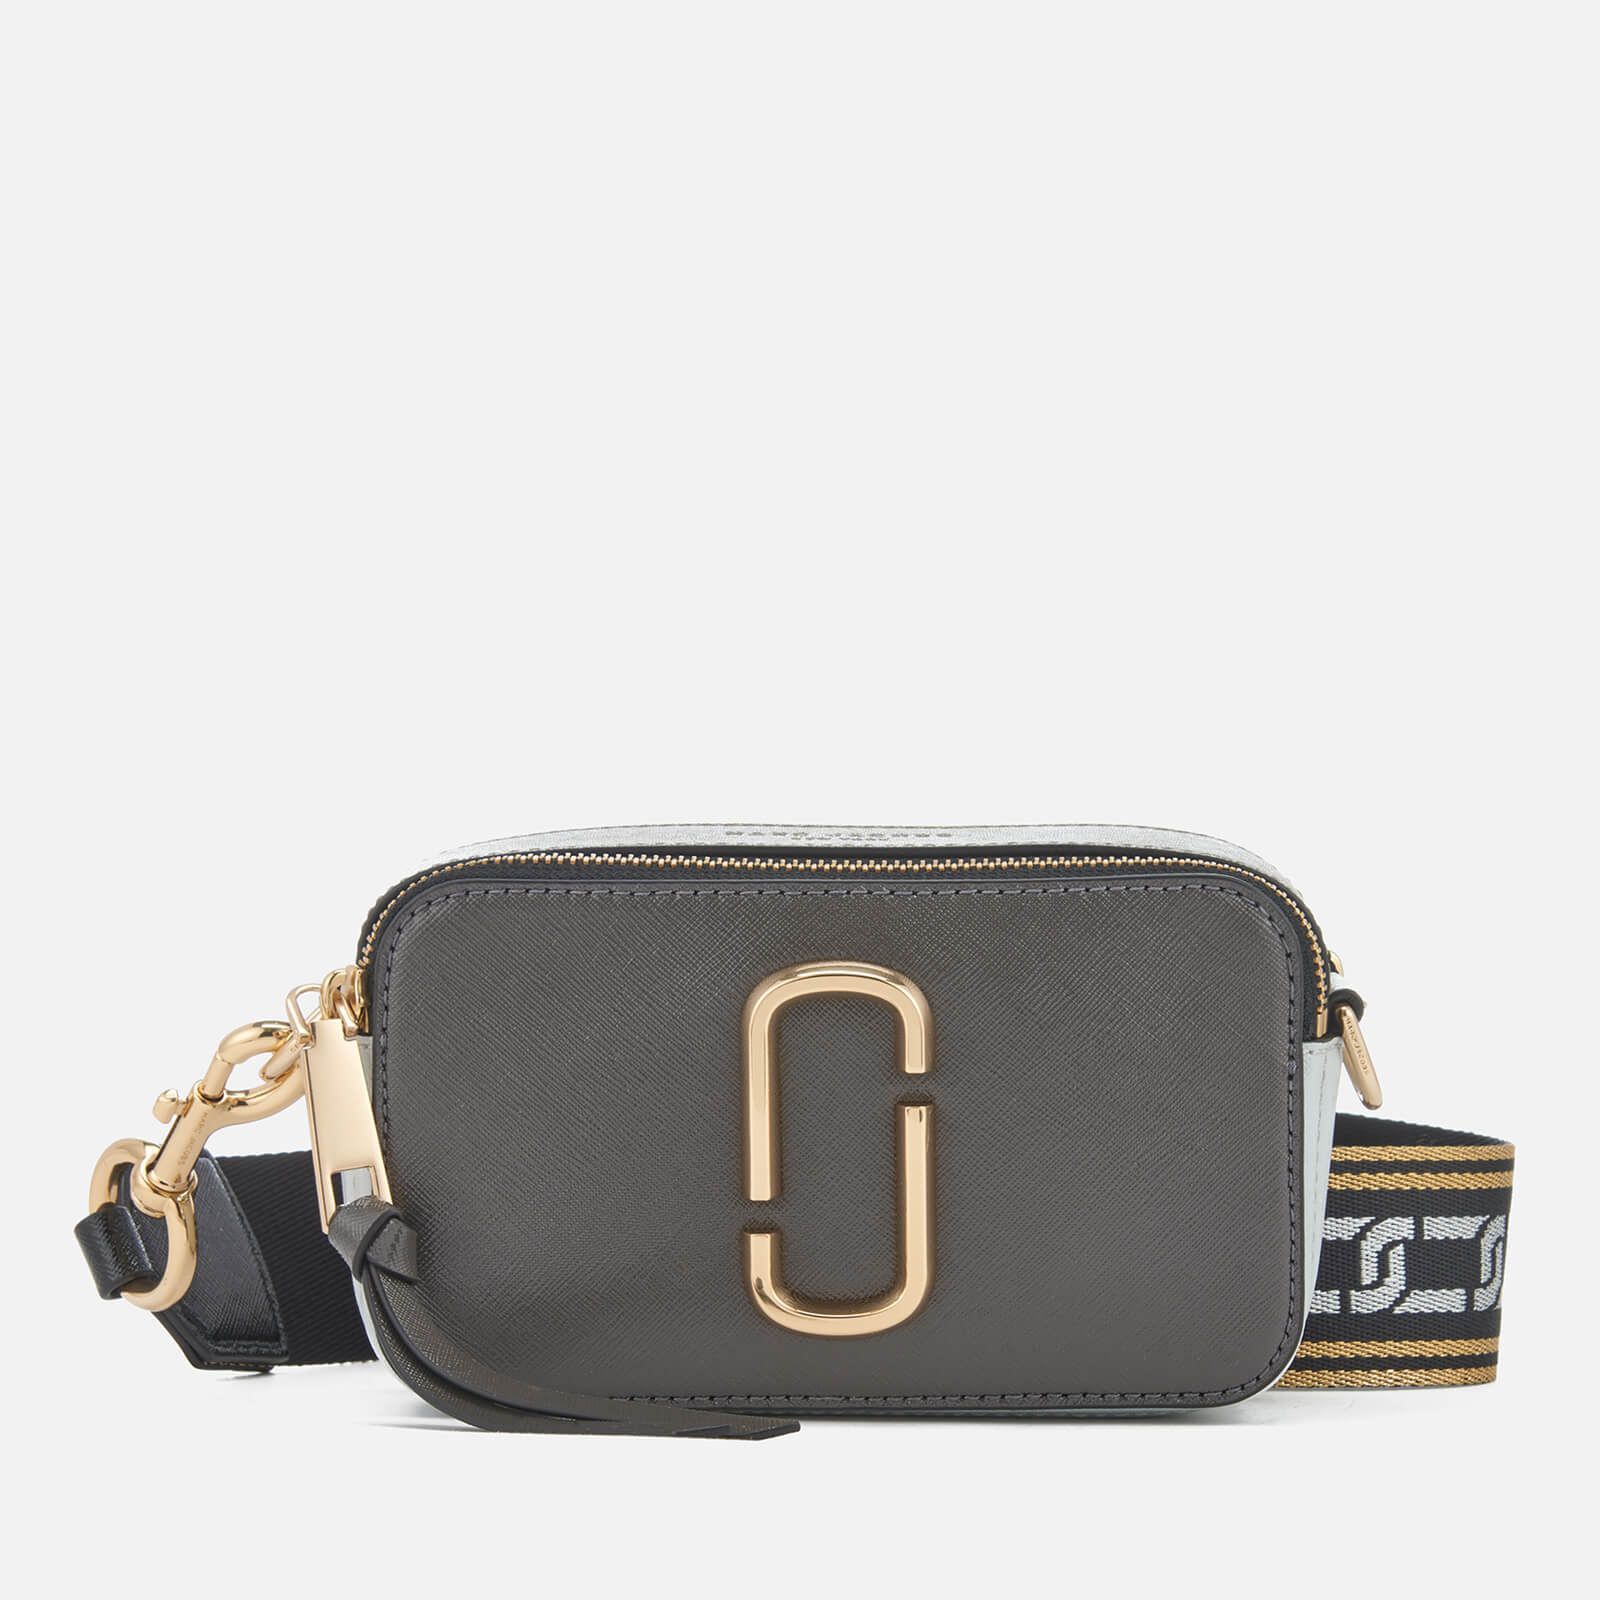 8f35ae9388 Marc Jacobs Women's Snapshot Cross Body Bag - Graphite/Multi - Free UK  Delivery over £50